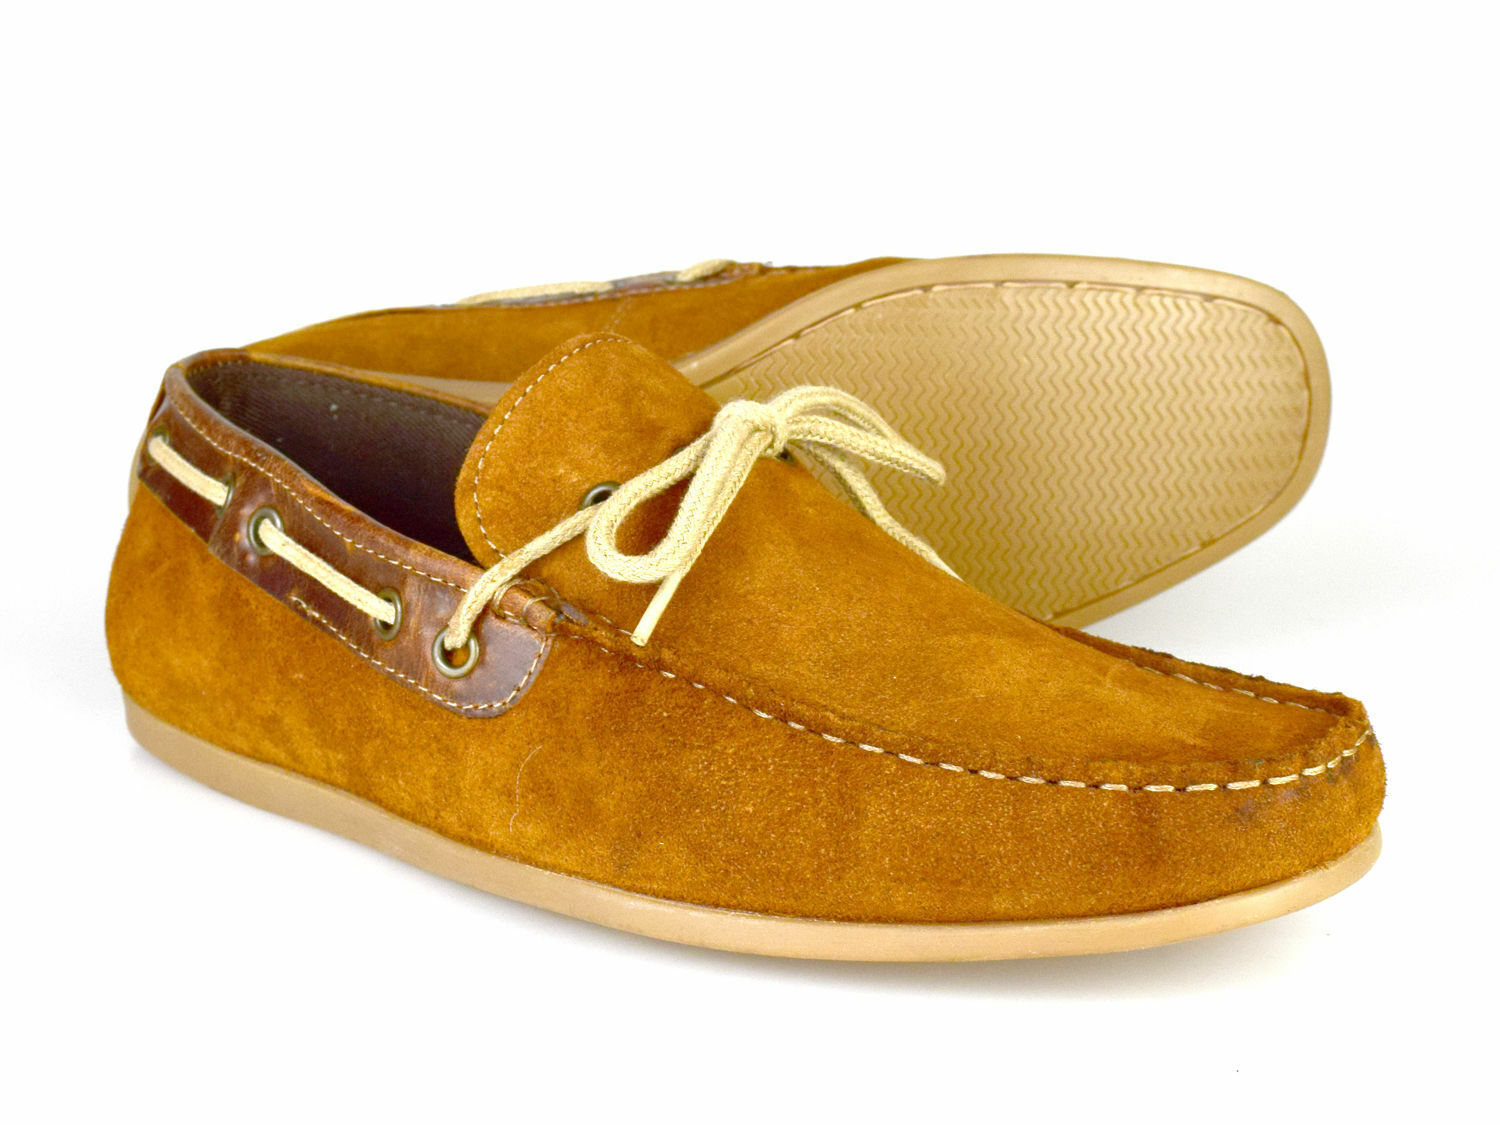 Red Tape Sandy Tan Suede Mens Casual Boat shoes